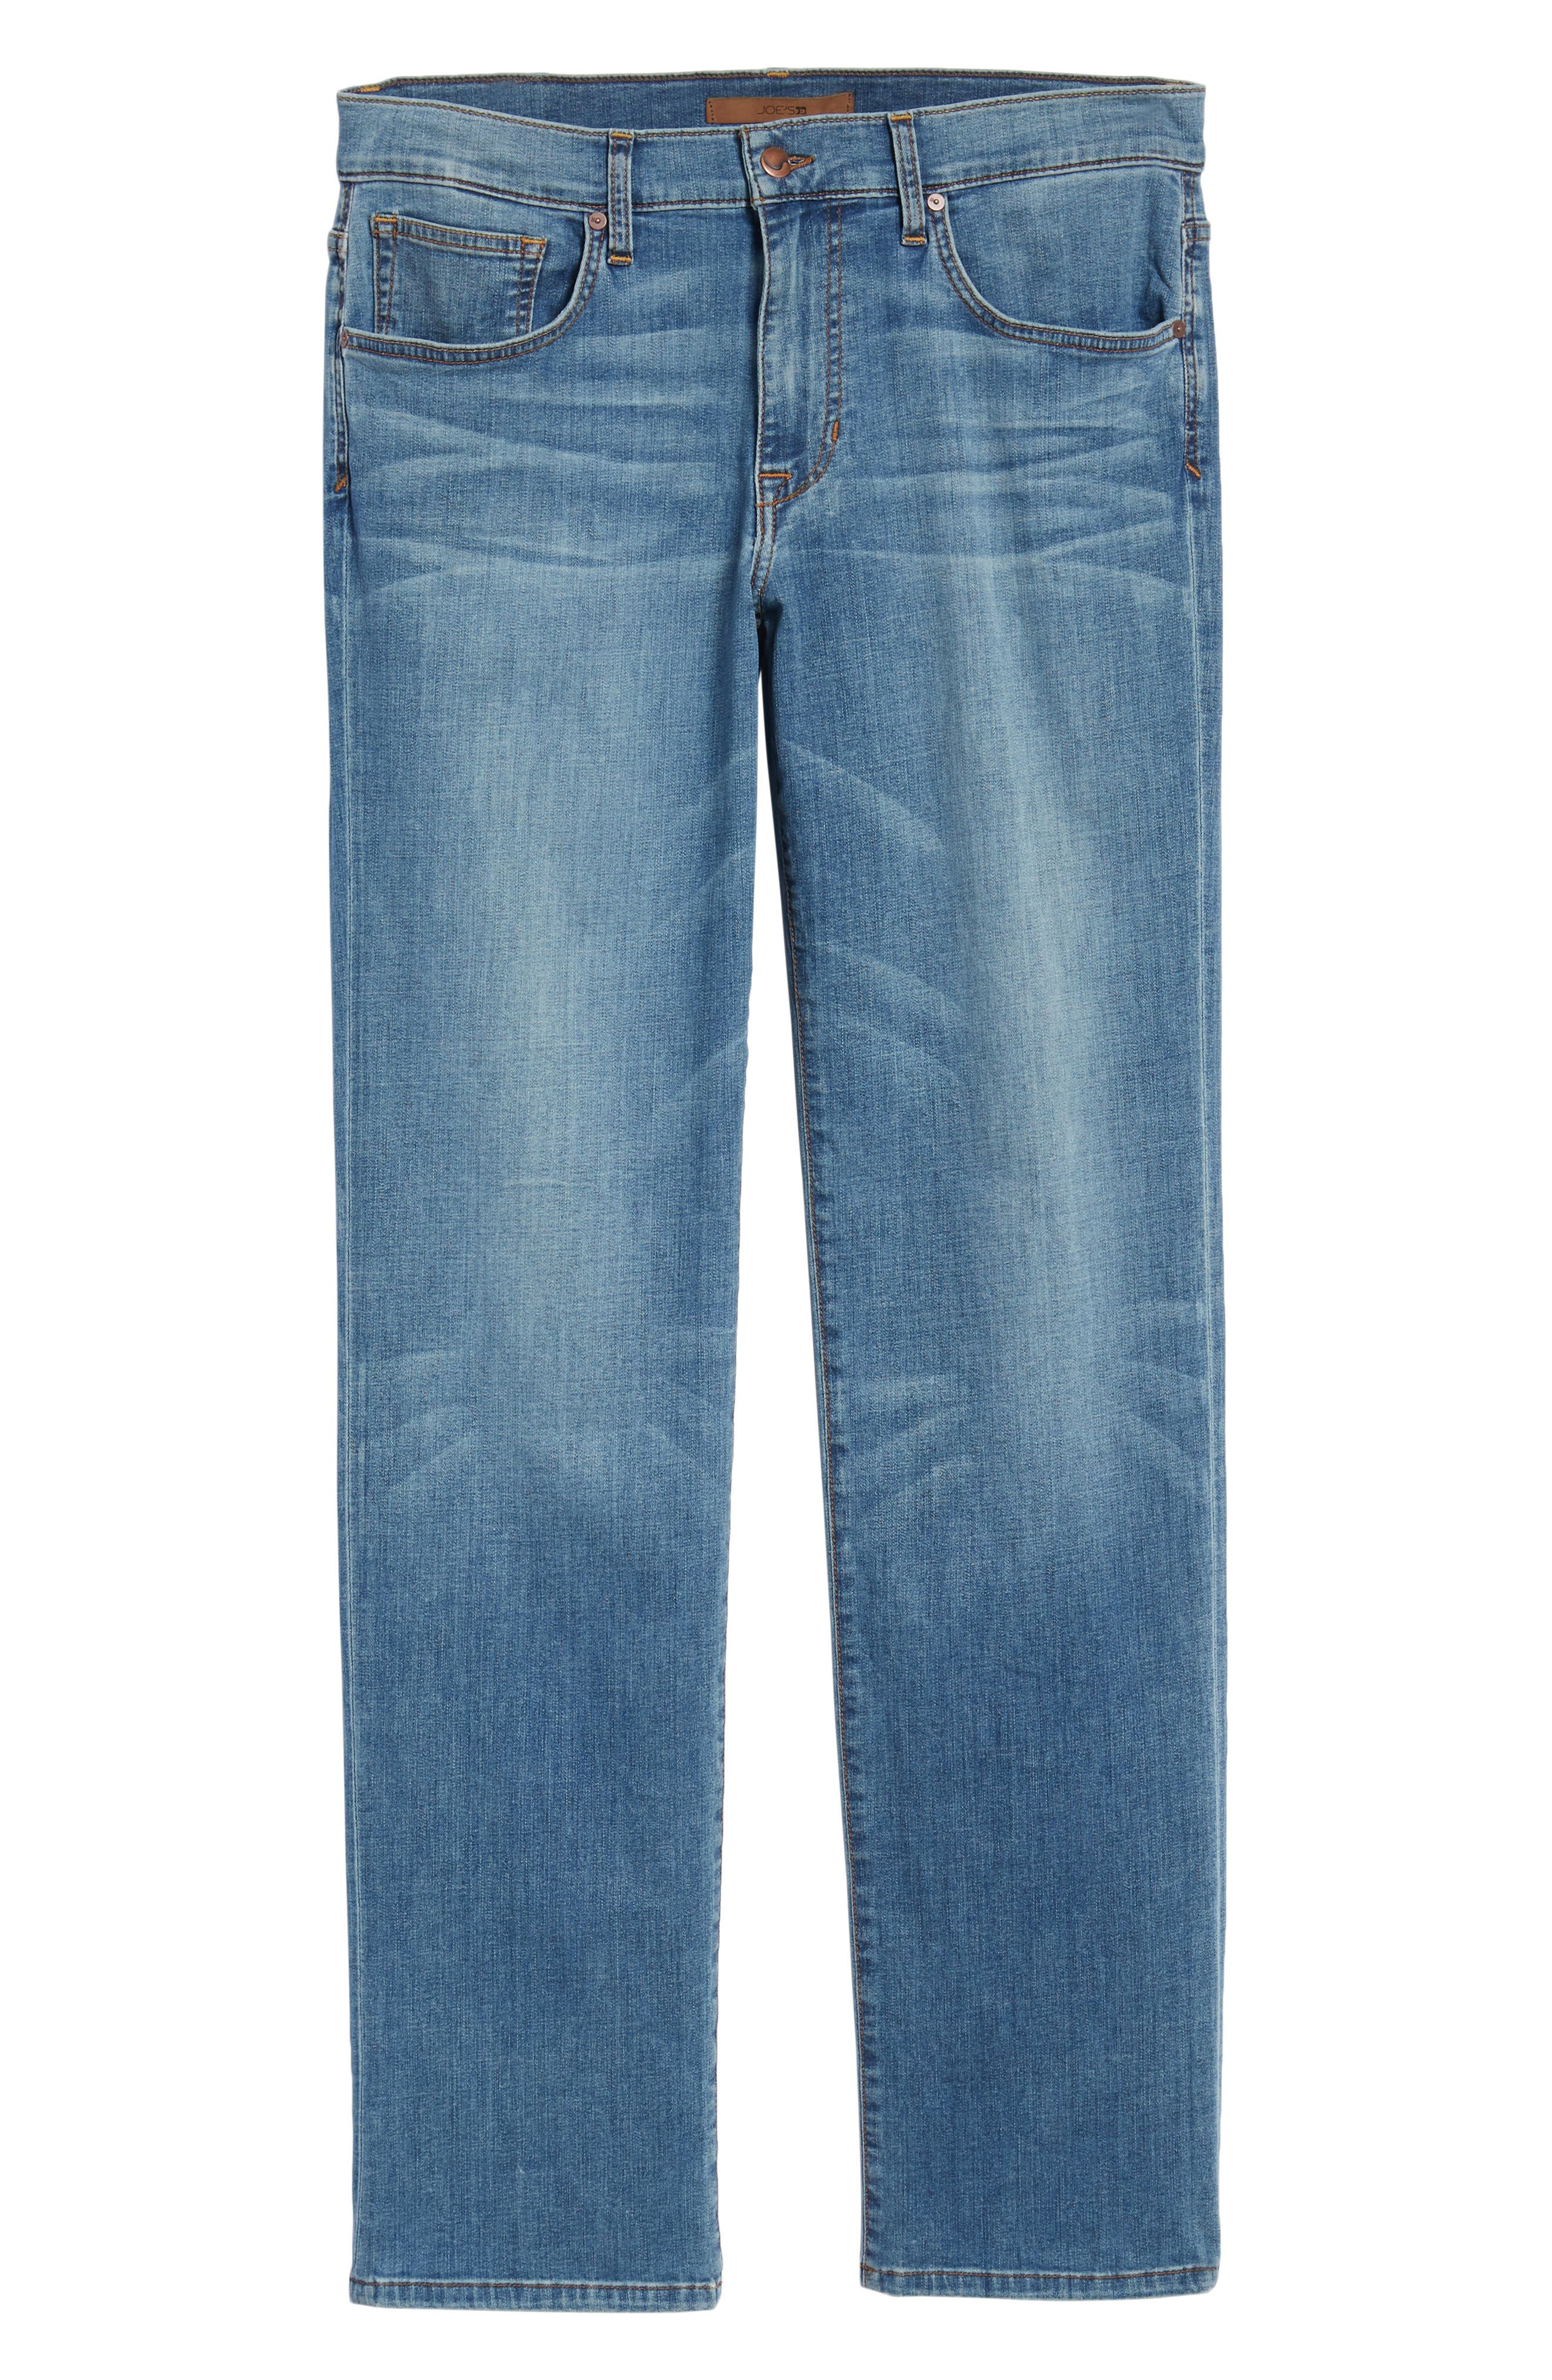 Classic Straight Fit Jeans,                             Alternate thumbnail 6, color,                             Redding